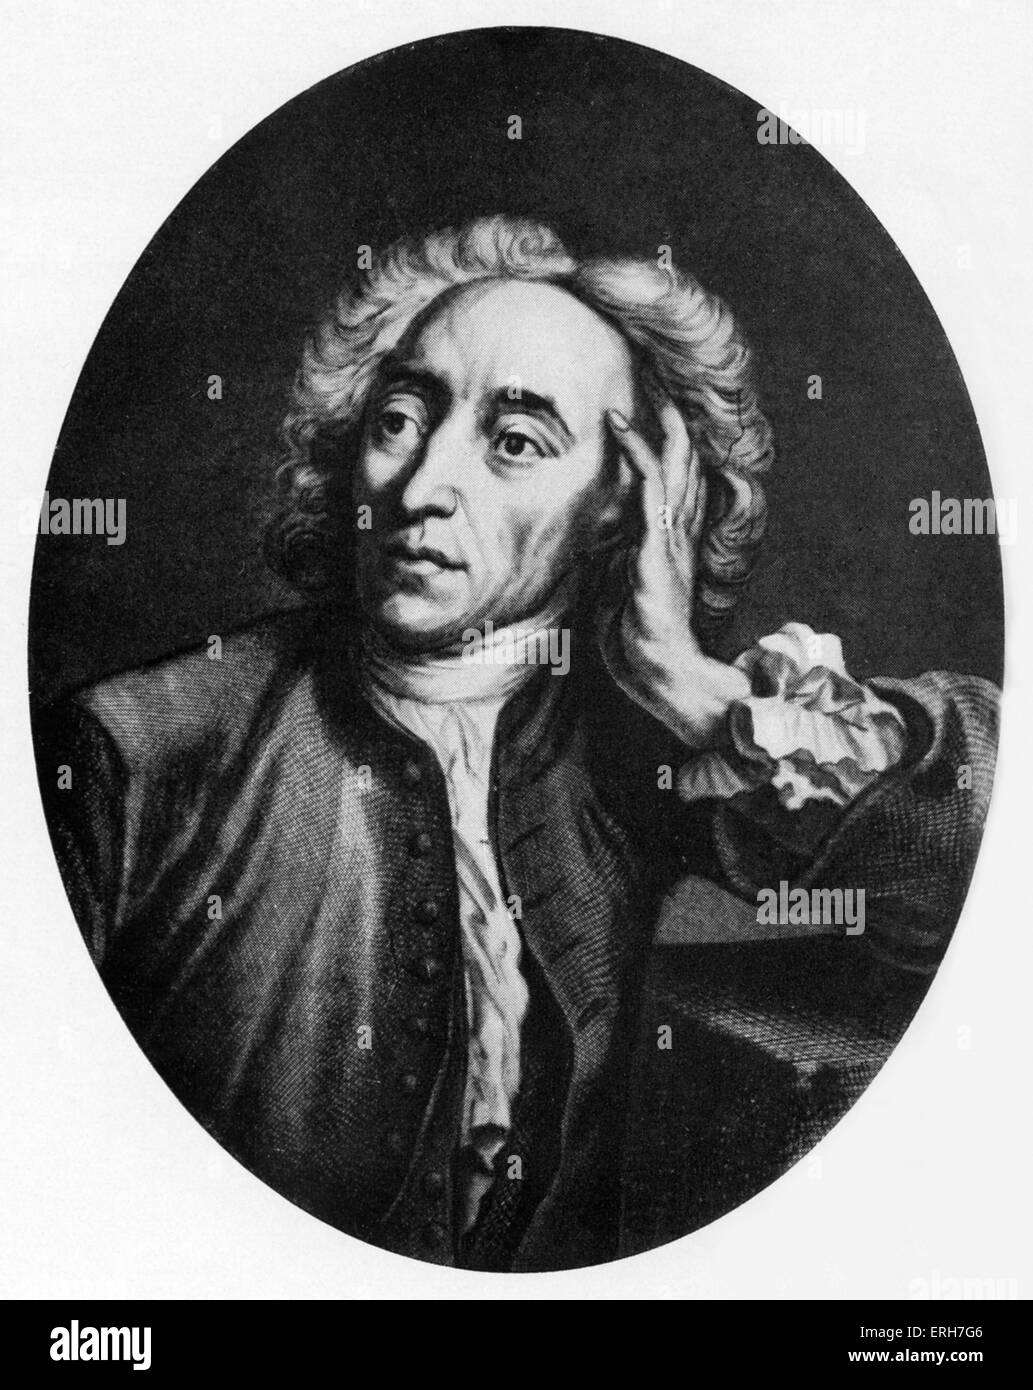 Alexander Pope - portrait. 18th century English poet 21 May 1688 - 30 May  1744 - Stock Image